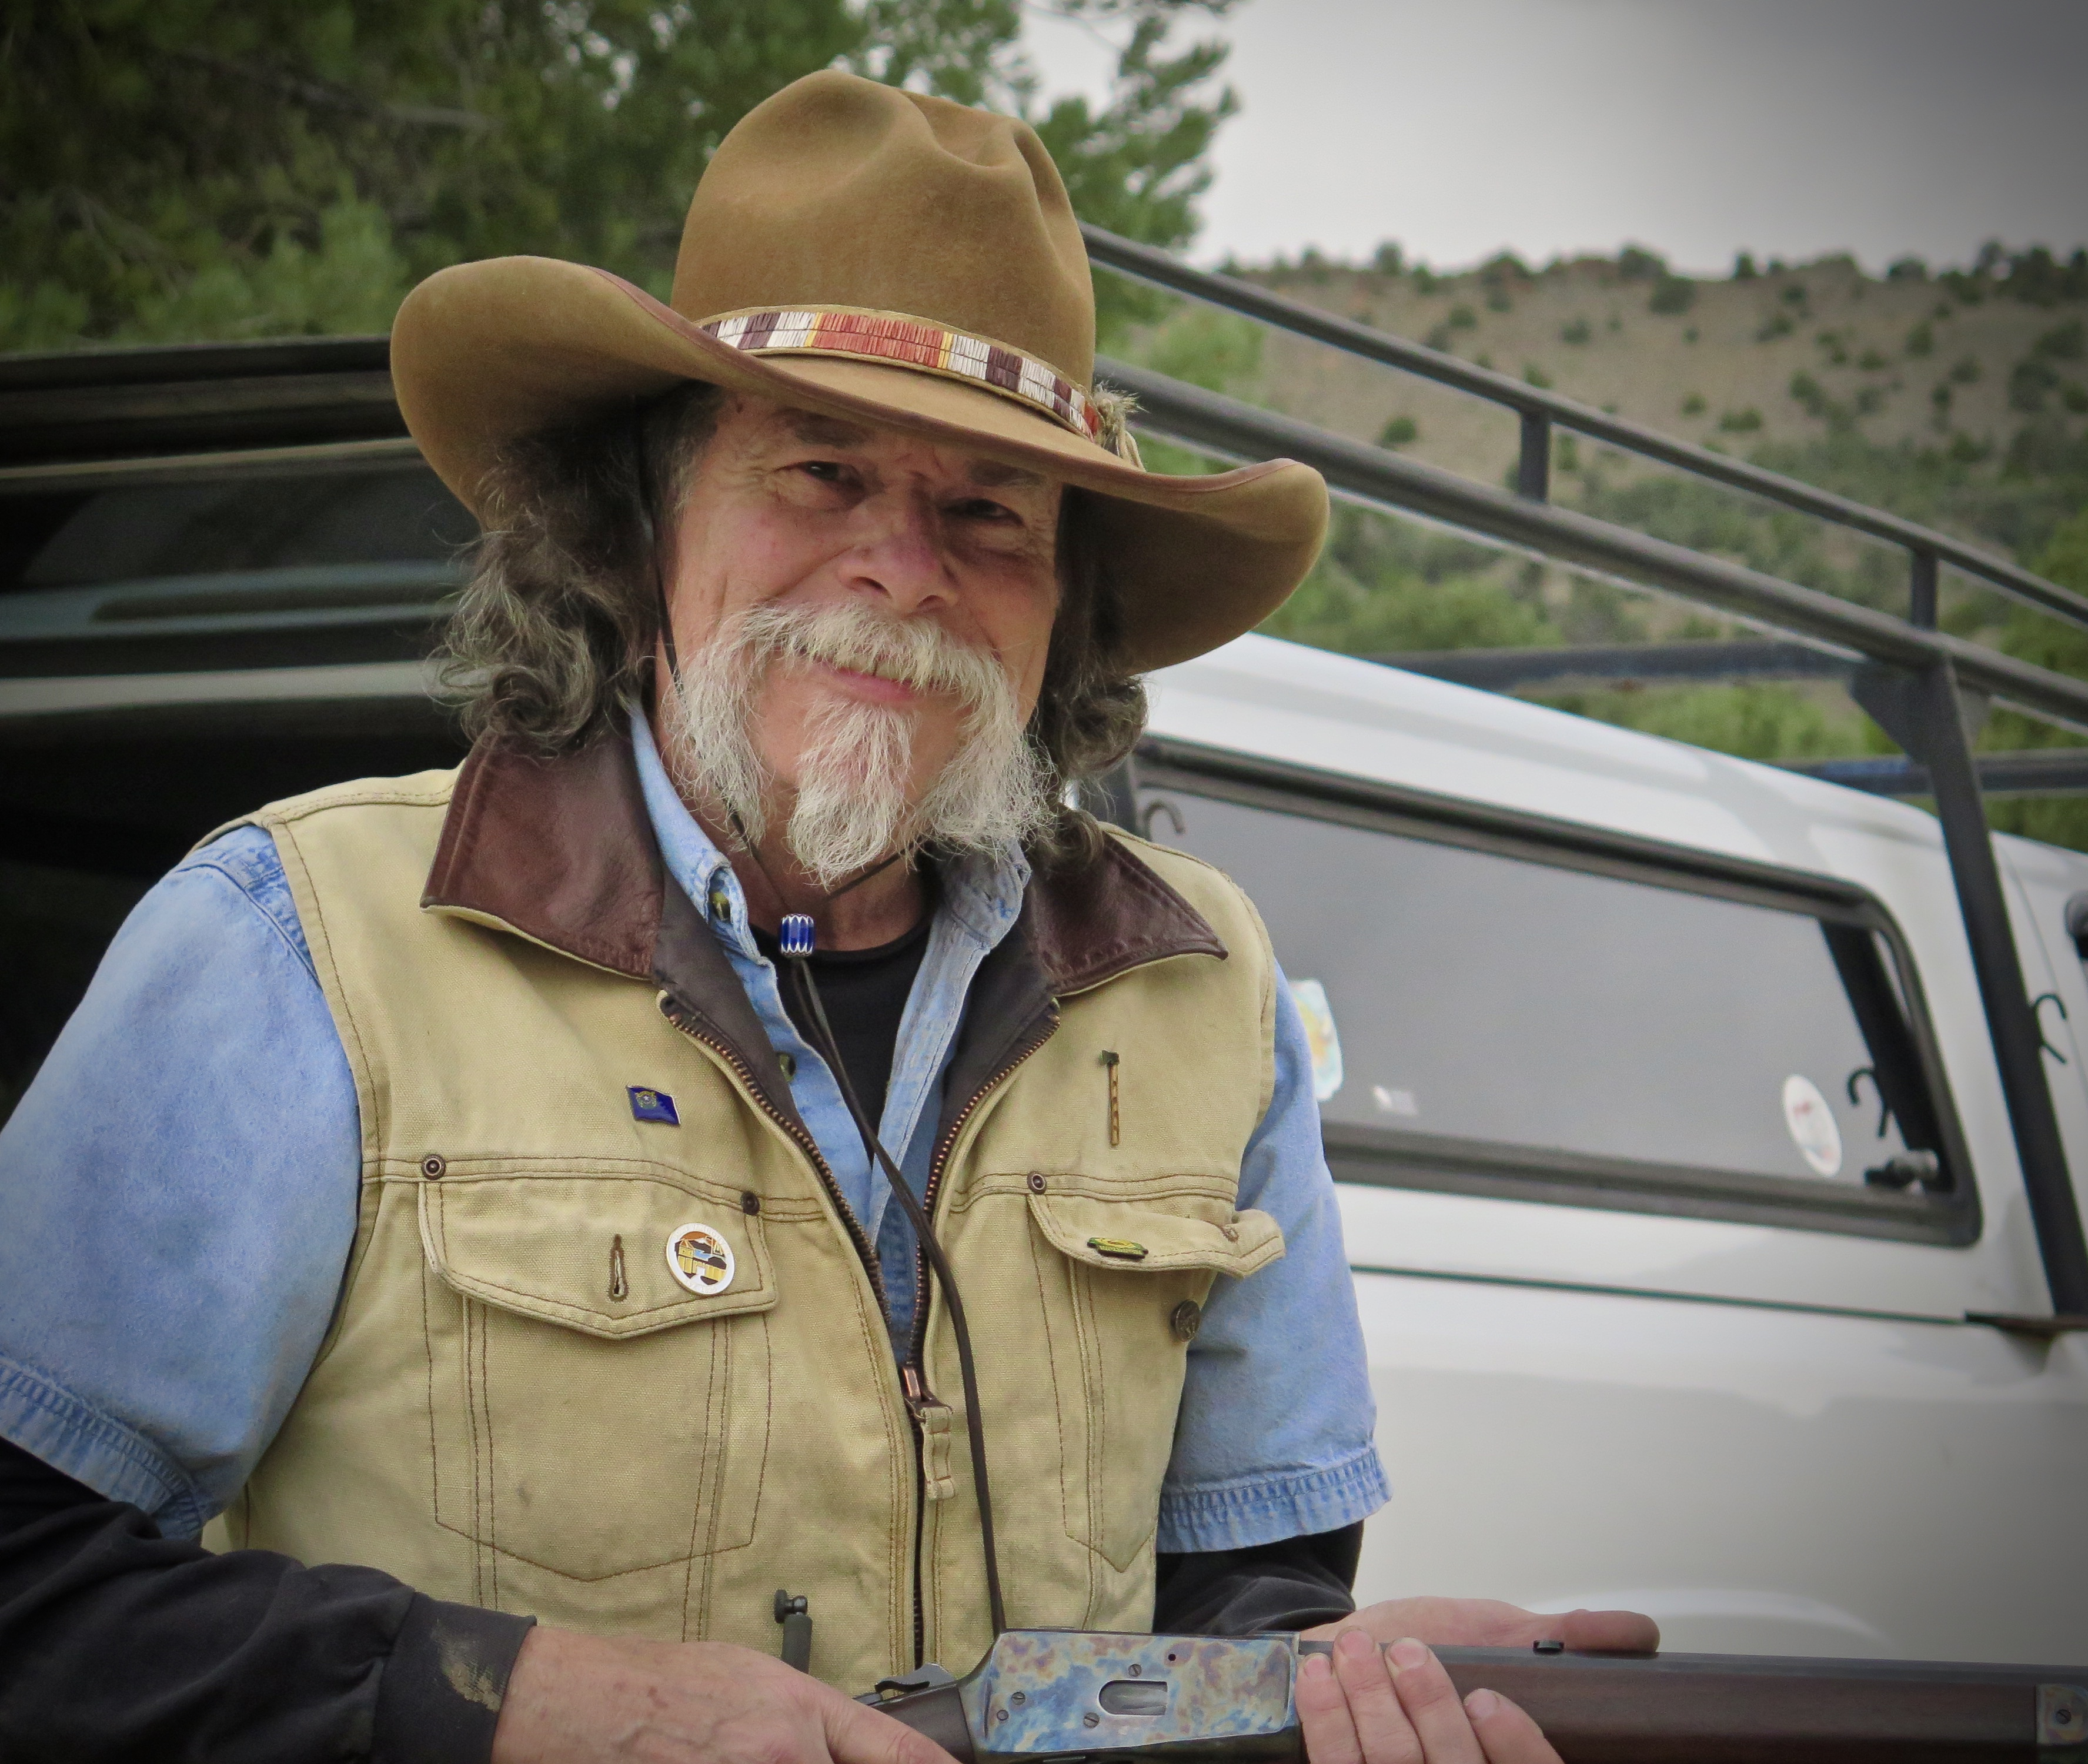 Nevada Historical Society presents Artown Tuesday: American Mountain Men with Larry Walker